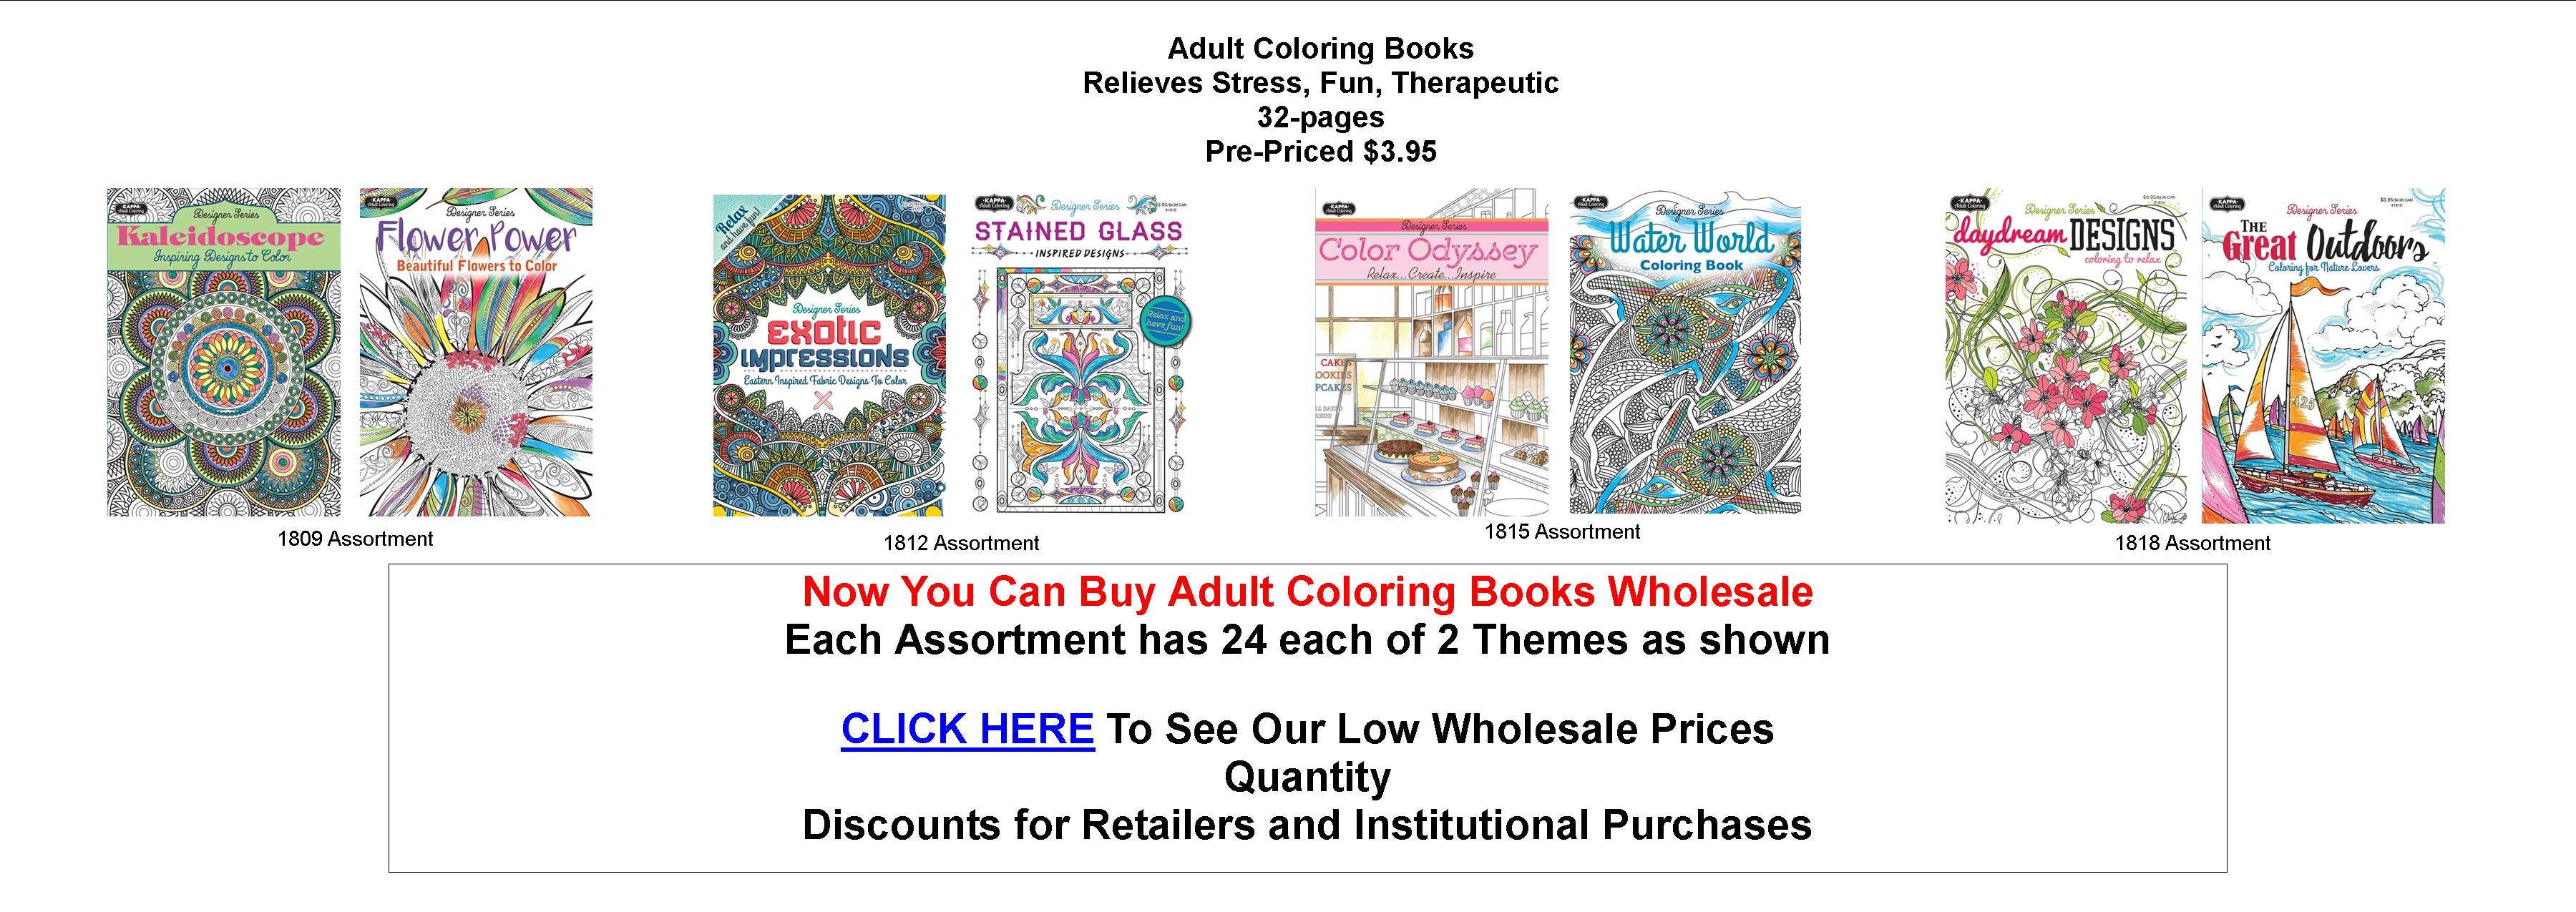 Adult coloring books wholesale prices mazer wholesale inc Coloring books for adults wholesale